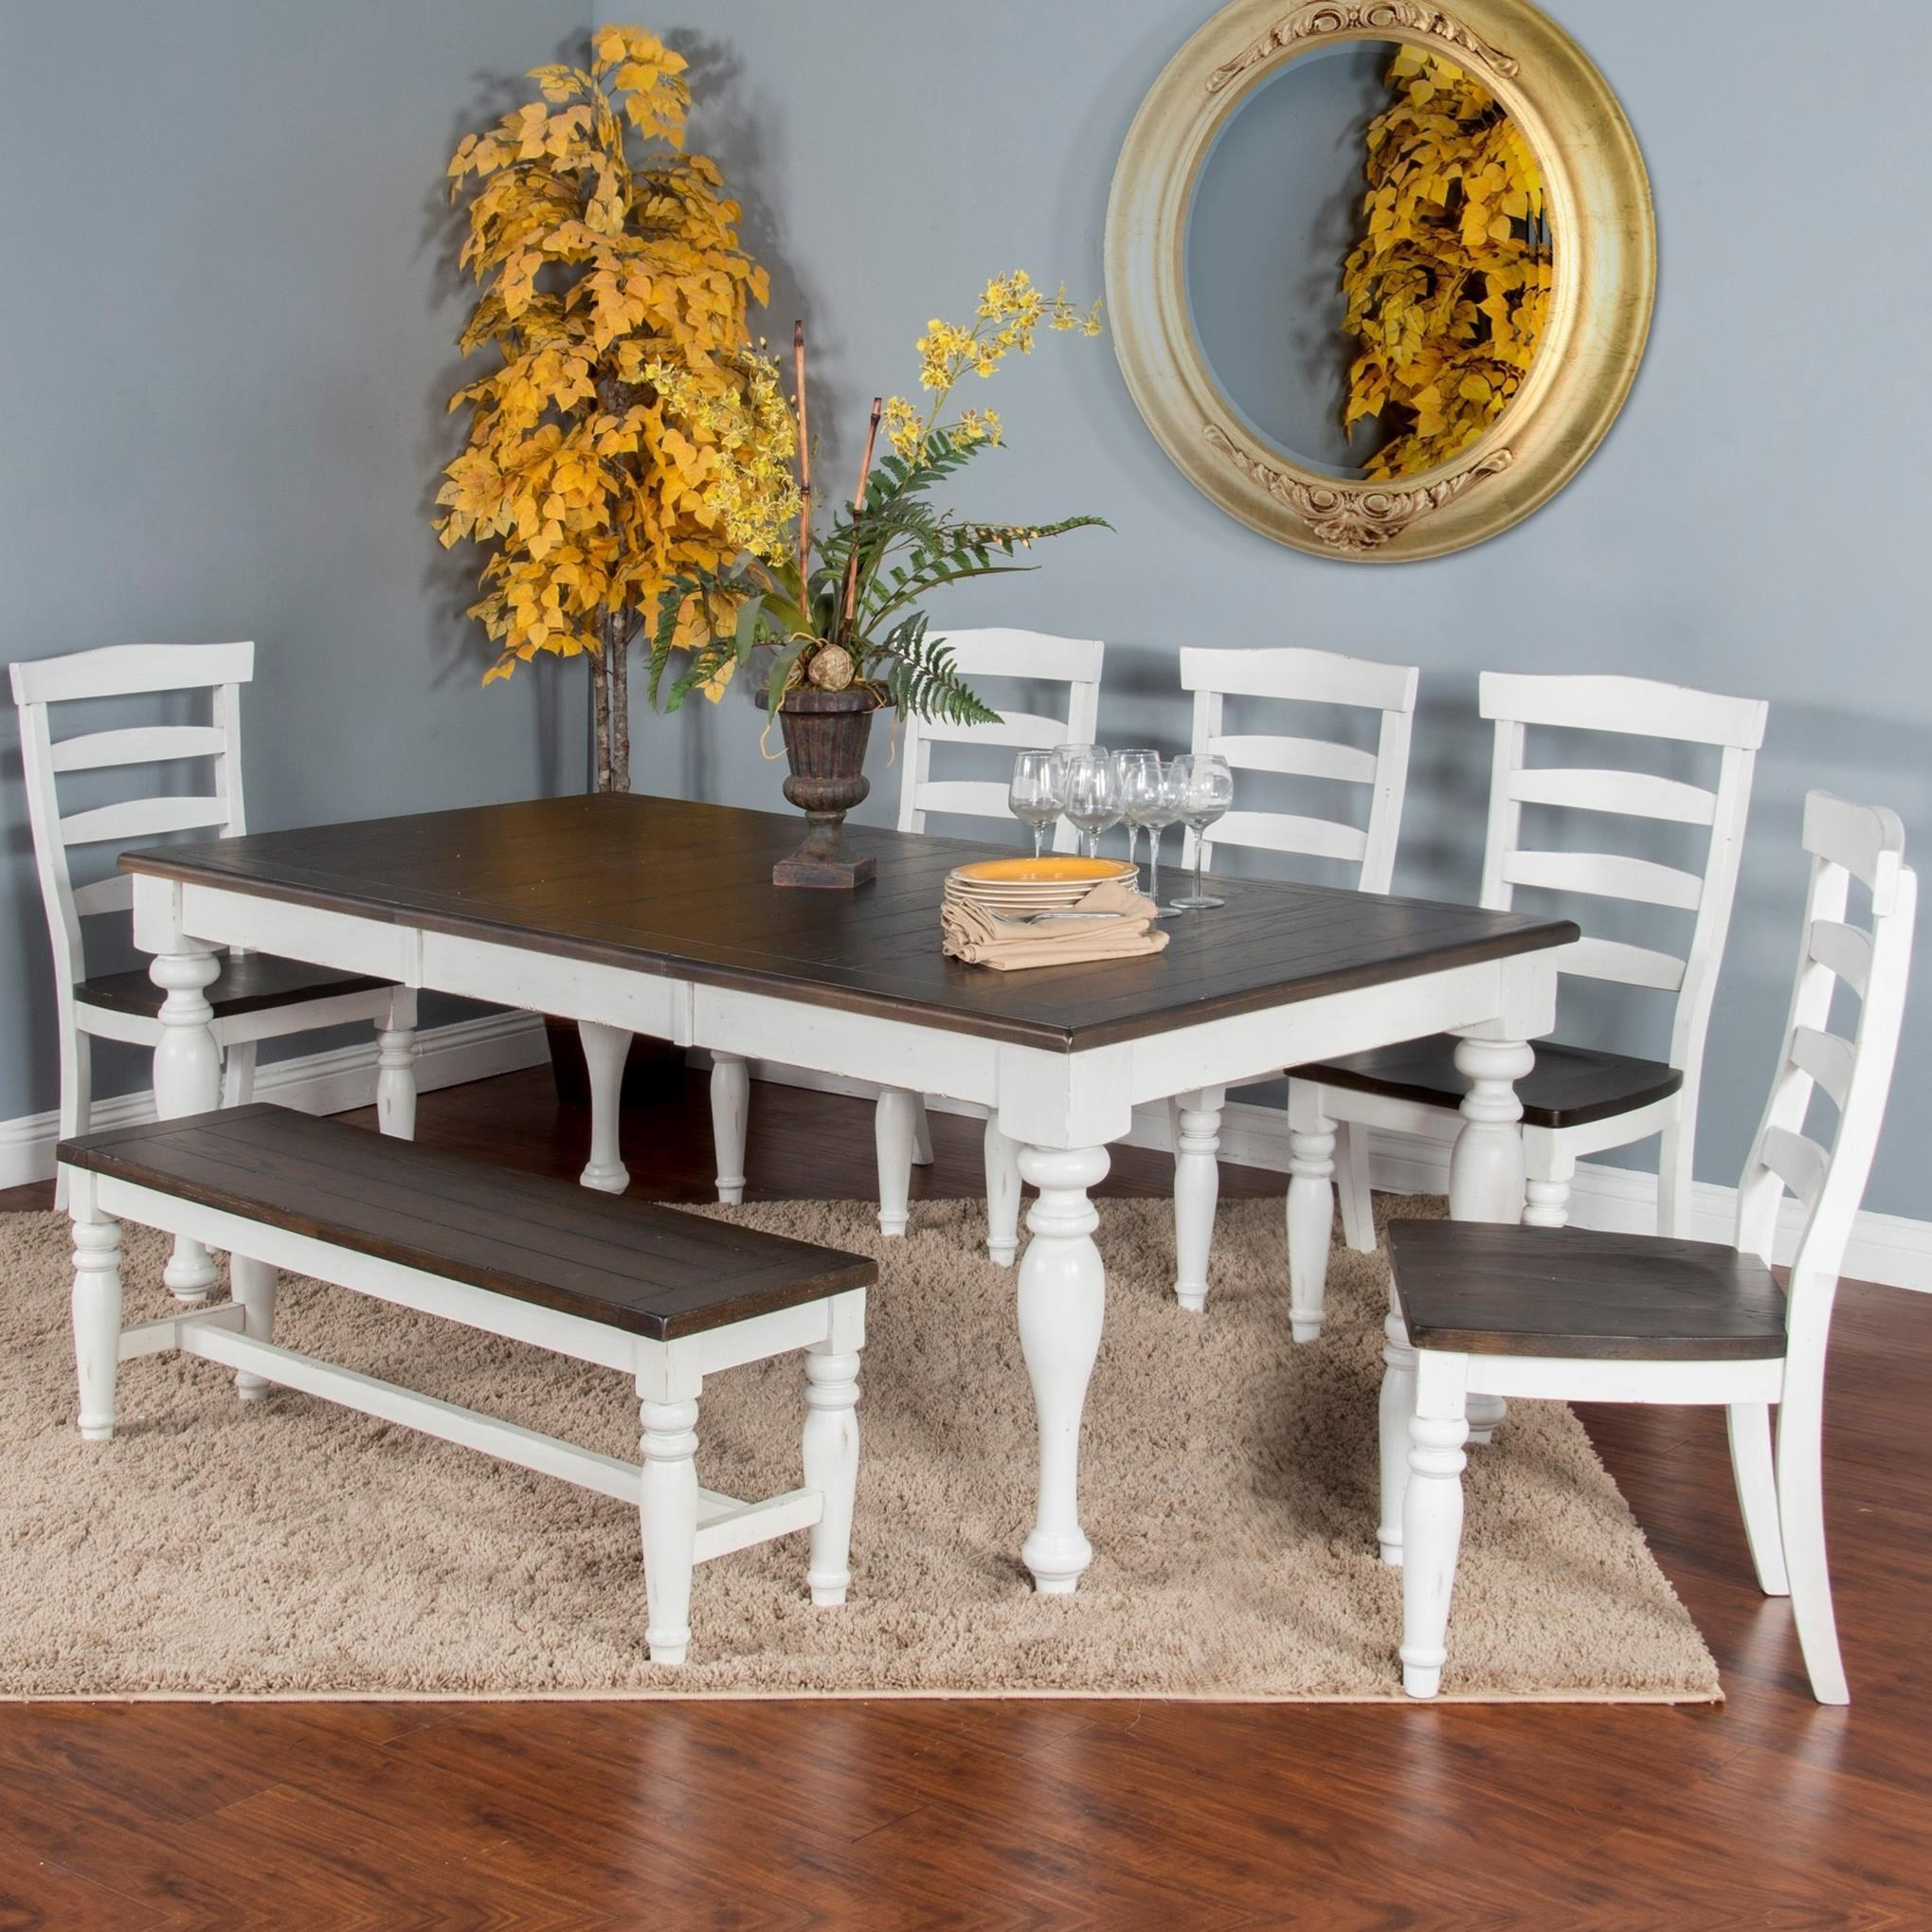 Sunny Designs Bourbon County Seven Piece Dining Set With Bench